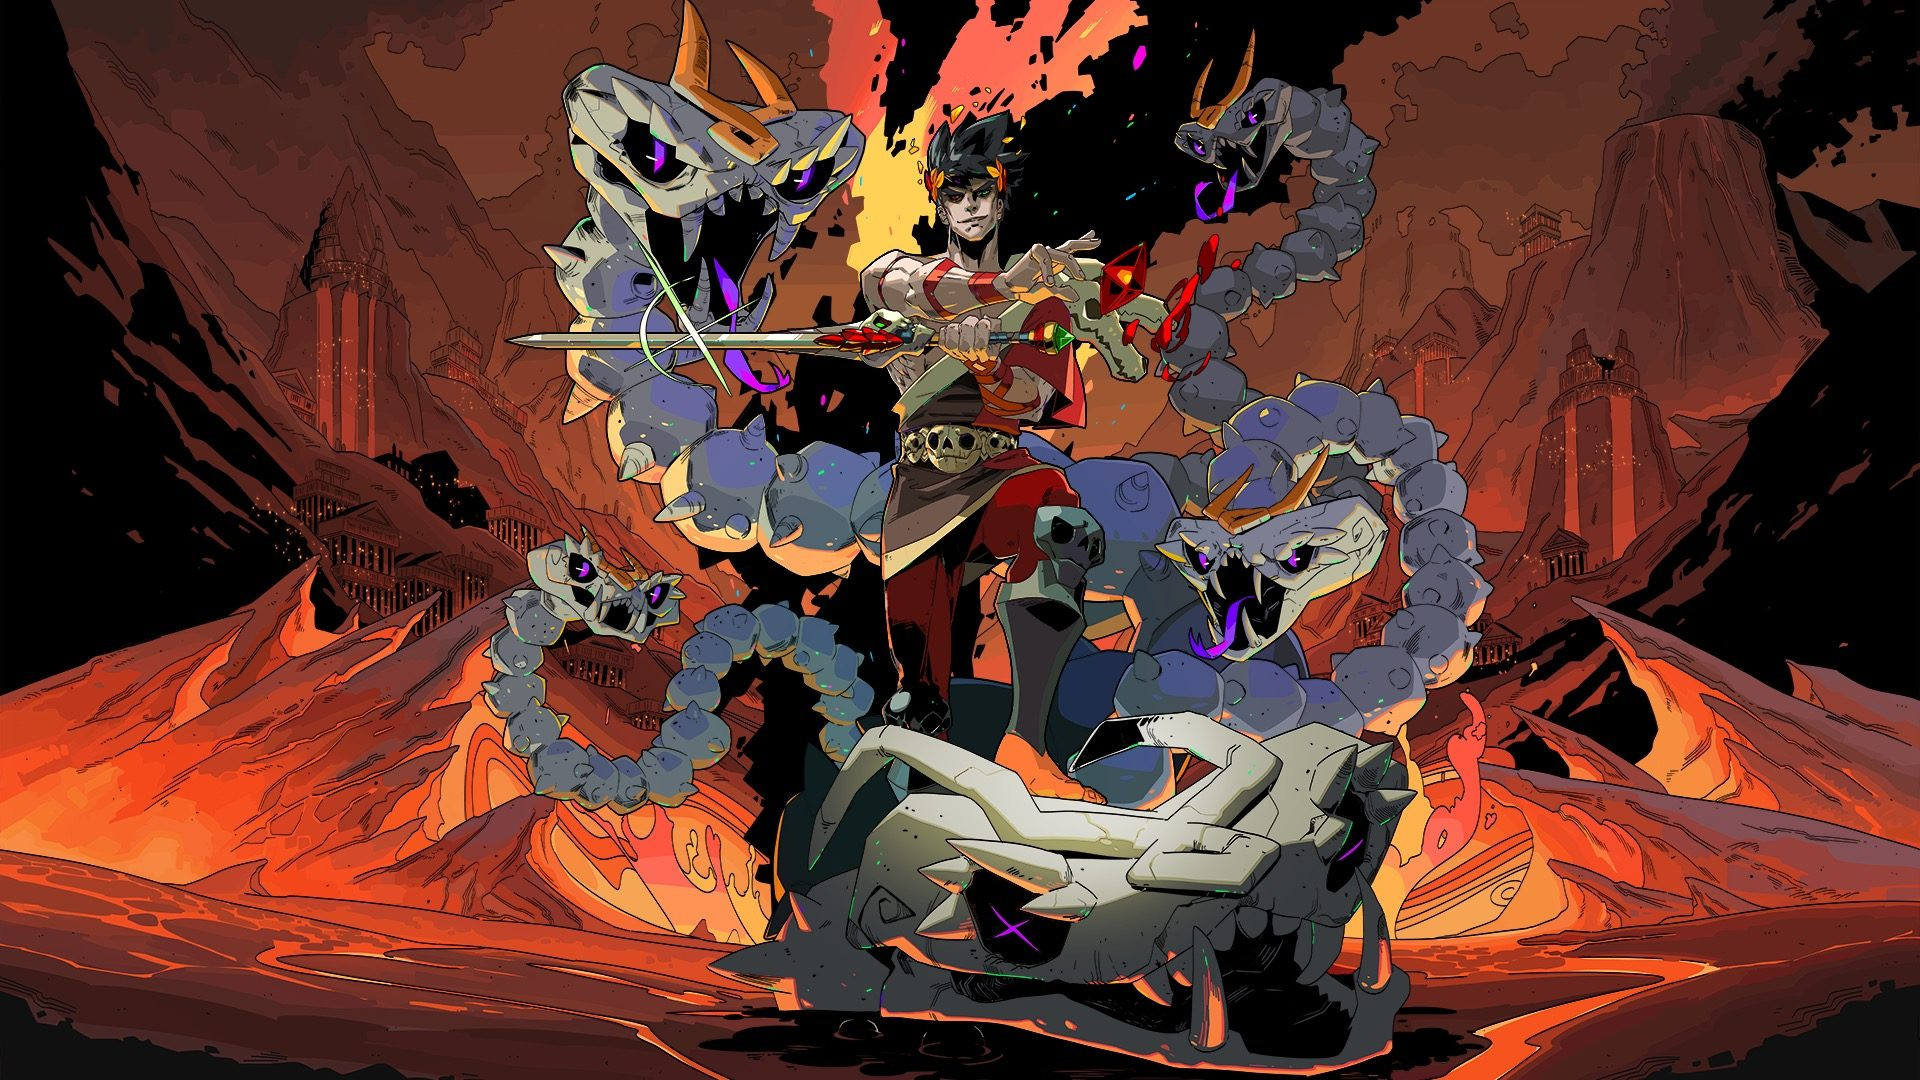 hades-launches-august-13-on-ps4-and-ps5